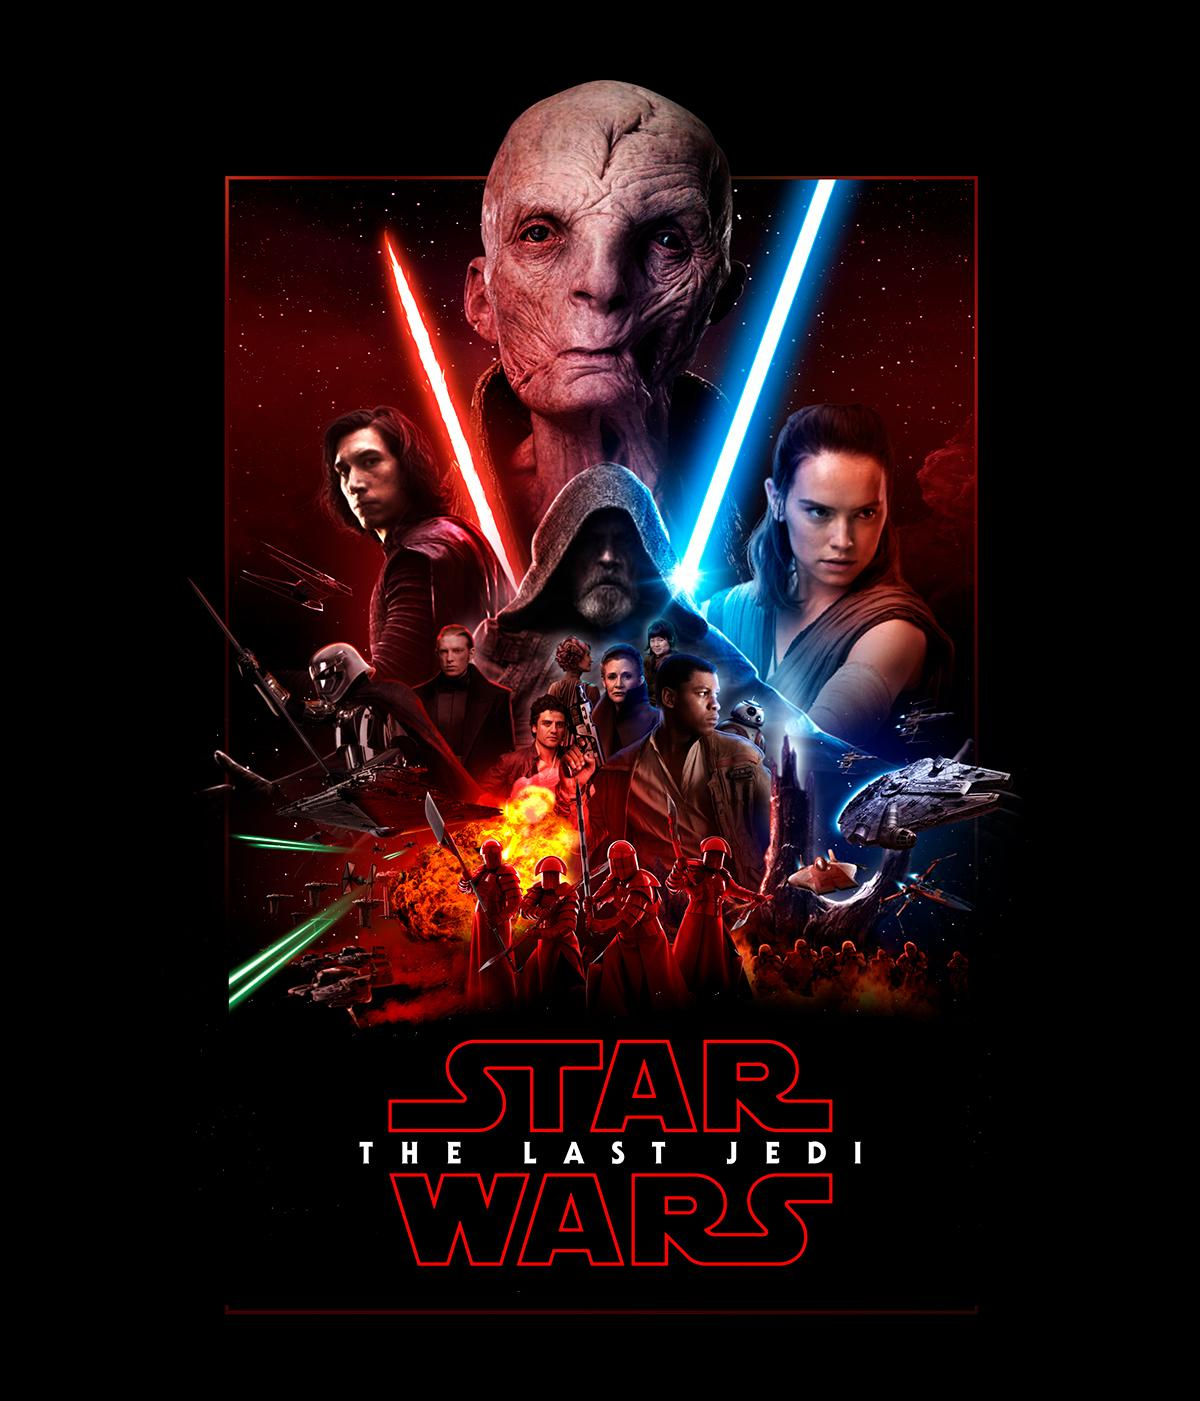 Star Wars The Last Jedi How Different Is Snoke S Ship From Darth Vader S Ship